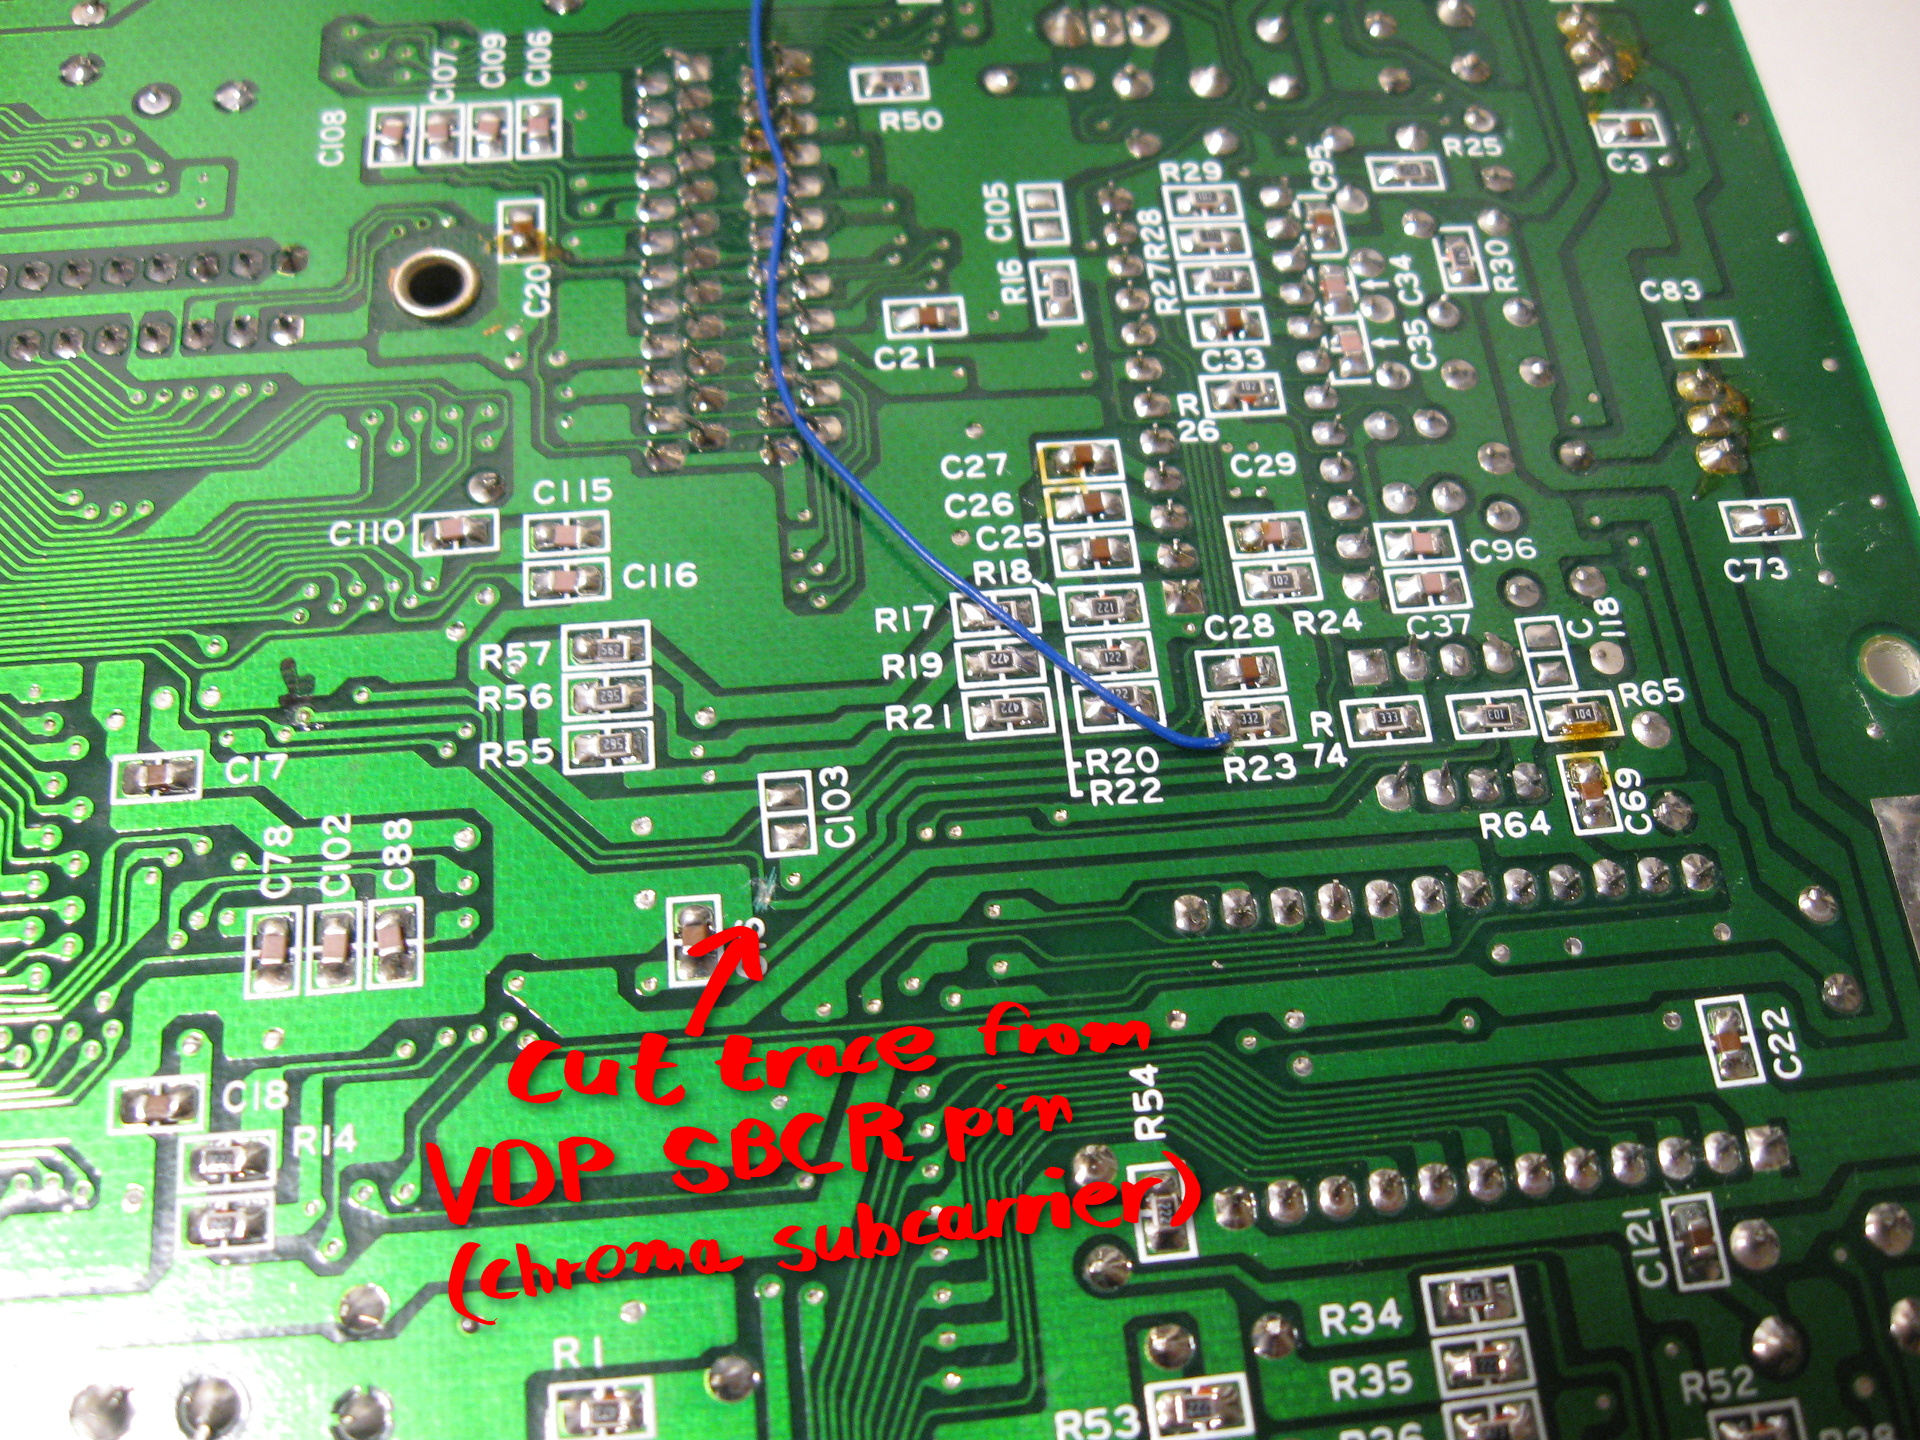 Sega Mega Drive Model 1 Pal Ntsc Switching Vdp Wiring Diagram For The Power And Ground Connections I Used A Convenient Nearby Bypass Capacitor Thought About Sticking My Board On Top Of With Double Sided